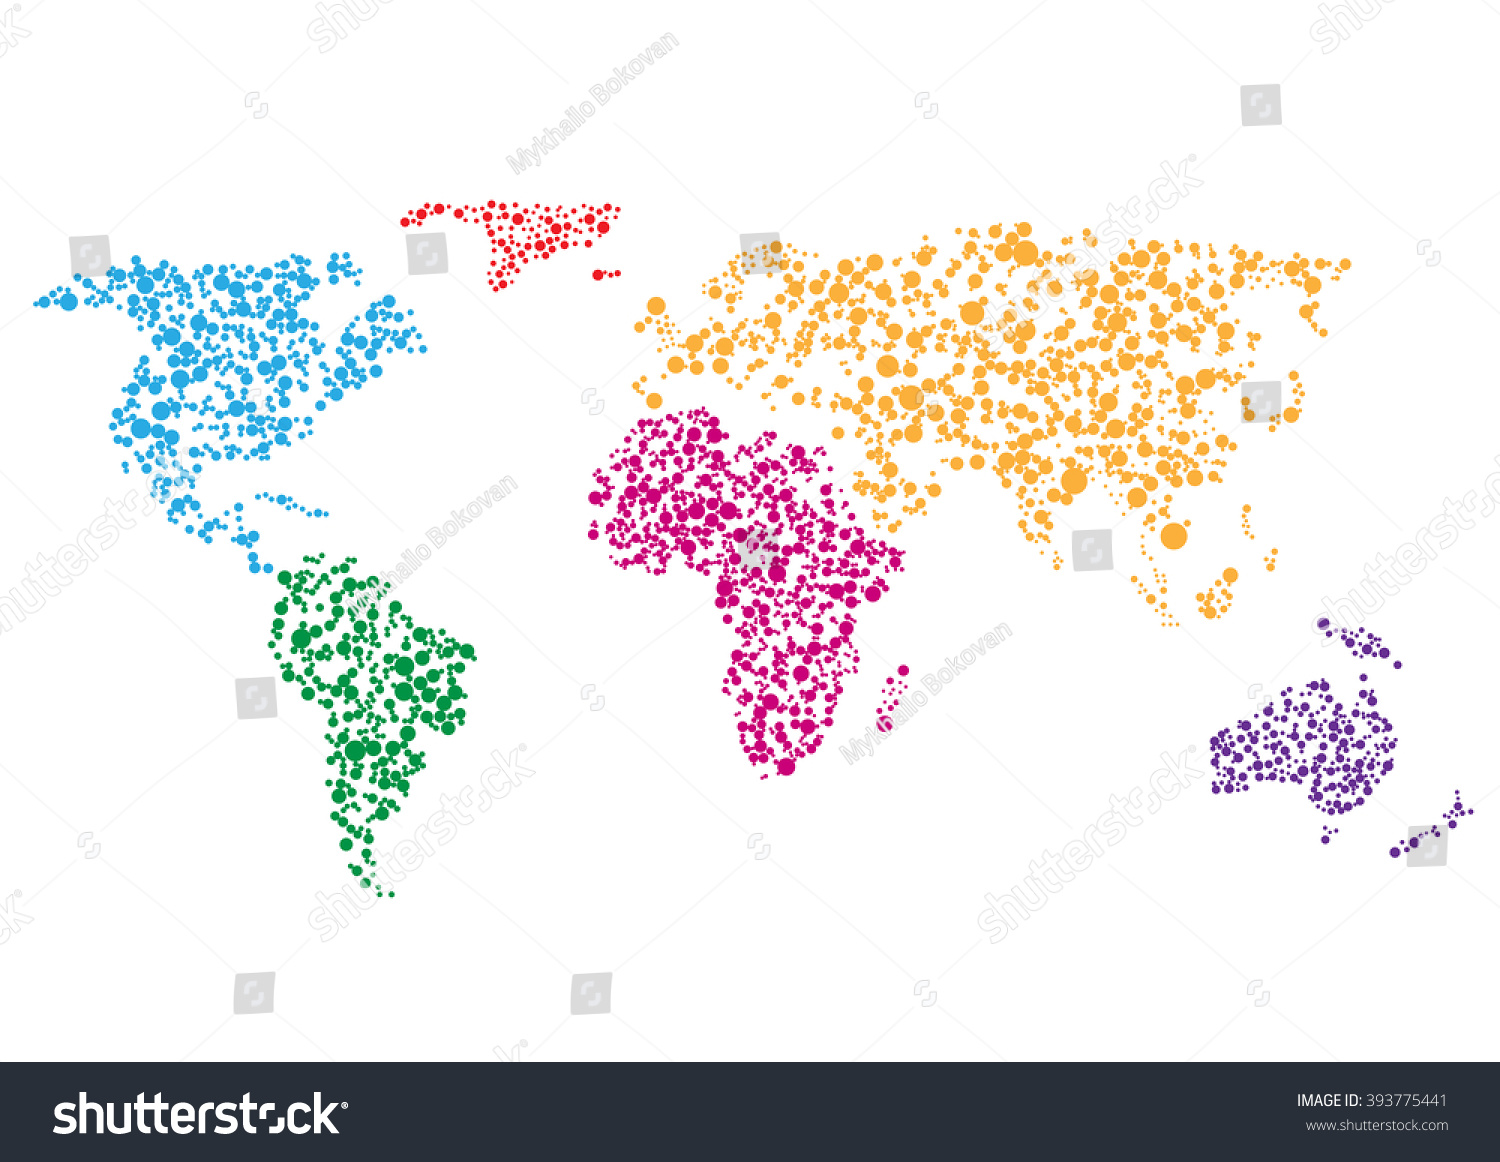 Colorful abstract creative world map on stock vector 393775441 colorful abstract creative world map on white background gumiabroncs Images